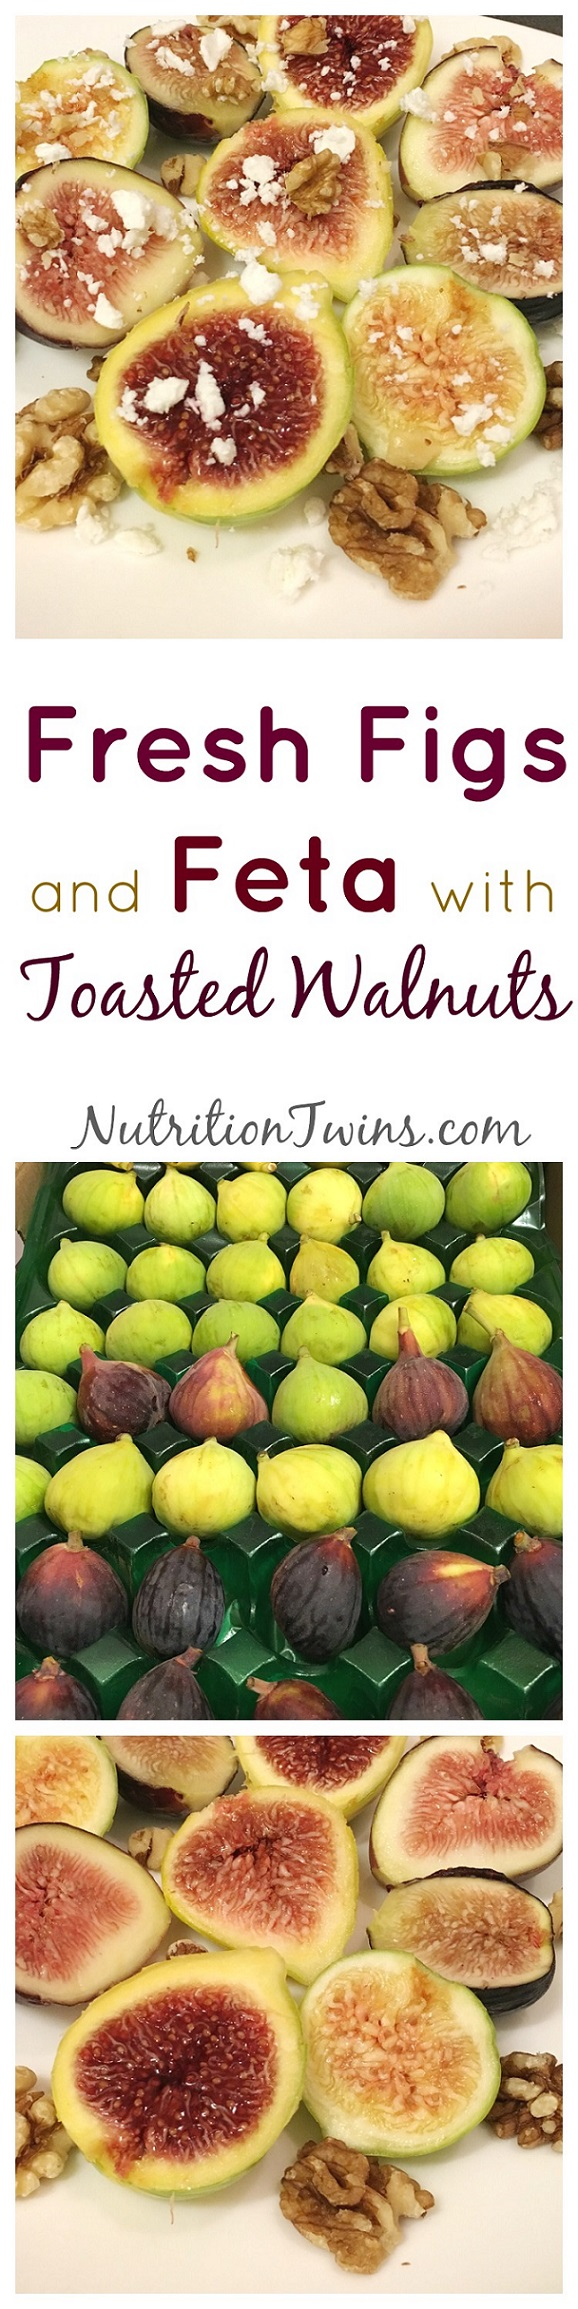 fresh_figs_toasted_walnuts_collage